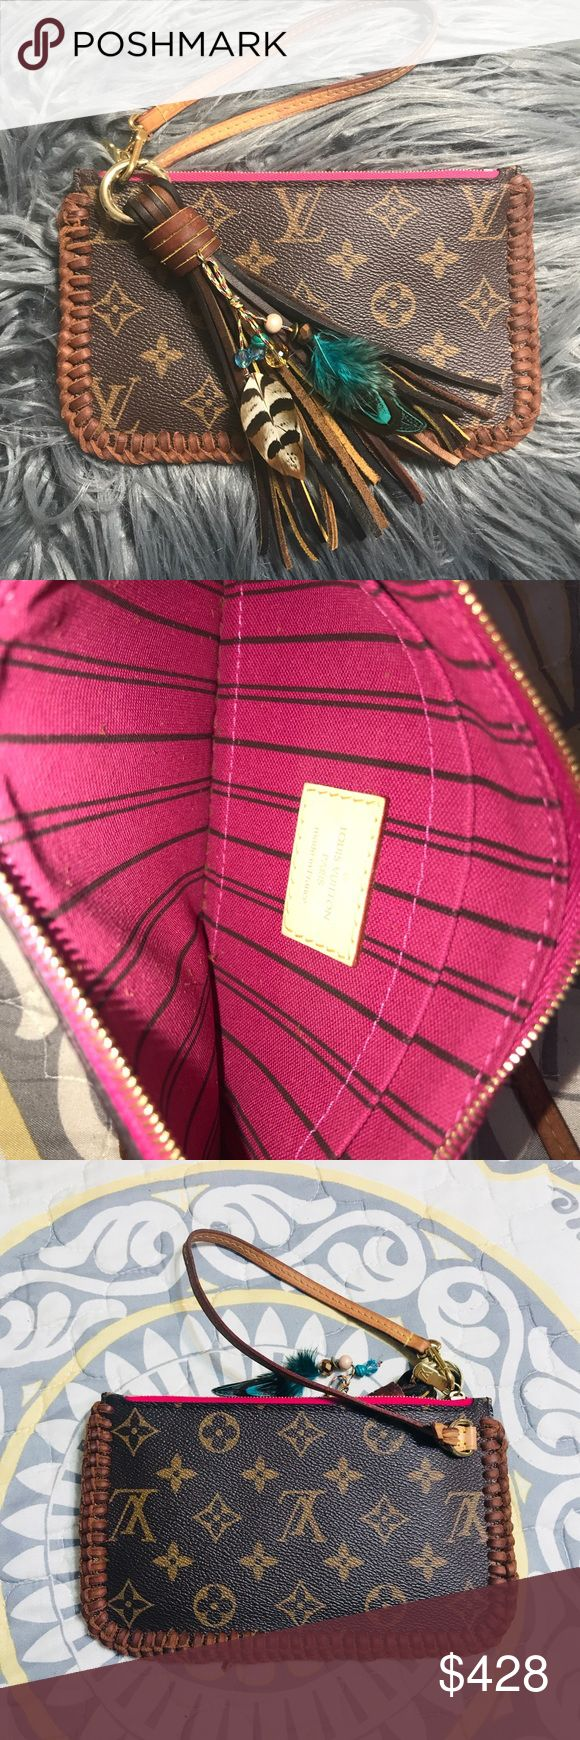 """Louis Vuitton Neverfull PM Pochette wristlet pink Authentic! Louis Vuitton Neverfull PM pochette  Pivoine pink lining.  Hand braided by me.  Tassel included- made by me!  No flaws.  Strap is patina from use 7.5""""x4.5"""" Louis Vuitton Bags Clutches & Wristlets"""